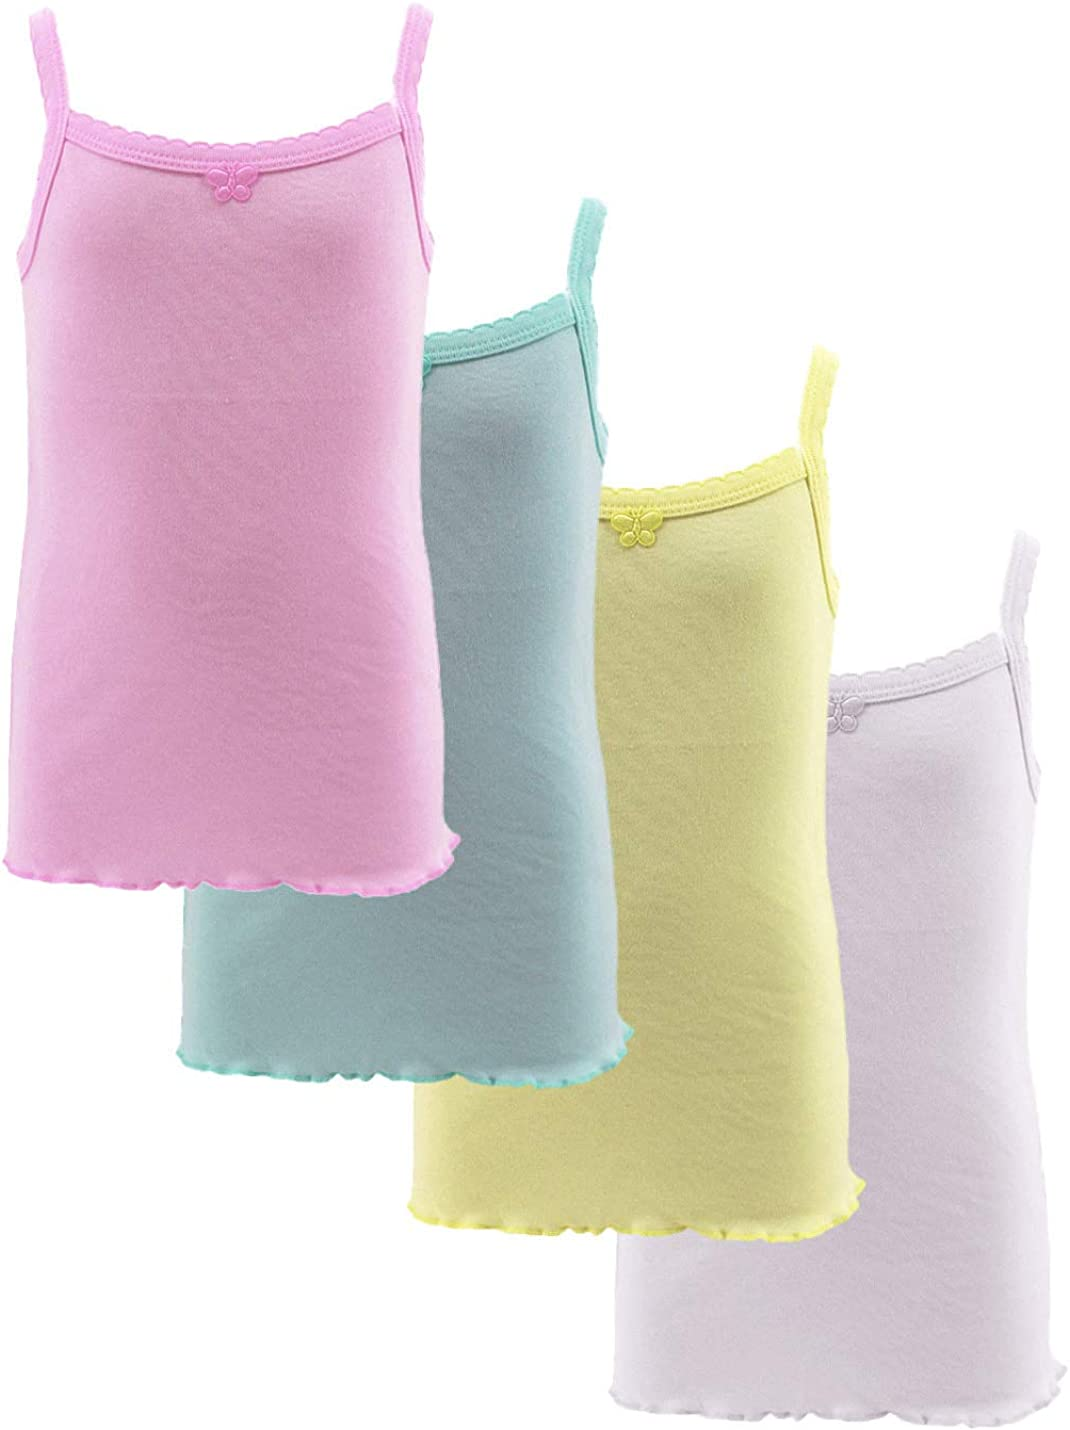 4-Pack Bow Detail Girls Colorful White 100% Cotton Undershirt Camisole Tank Tops